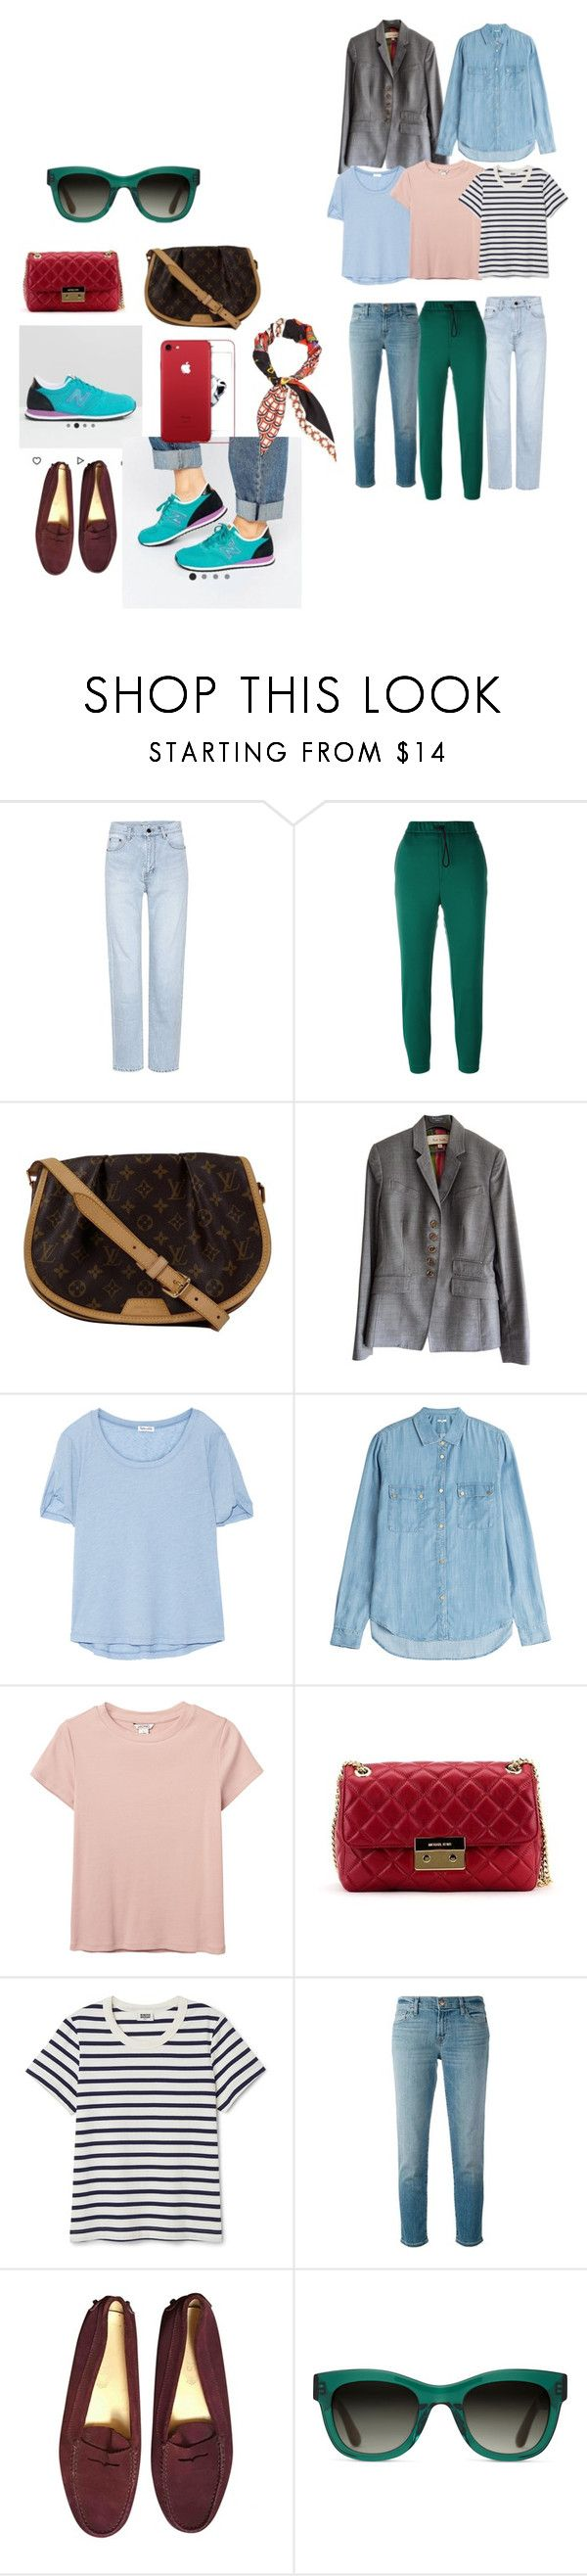 """Каникулы 1"" by sasha-grusha on Polyvore featuring мода, Yves Saint Laurent, Golden Goose, Louis Vuitton, Paul Smith, Splendid, 7 For All Mankind, Monki, Michael Kors и J Brand"